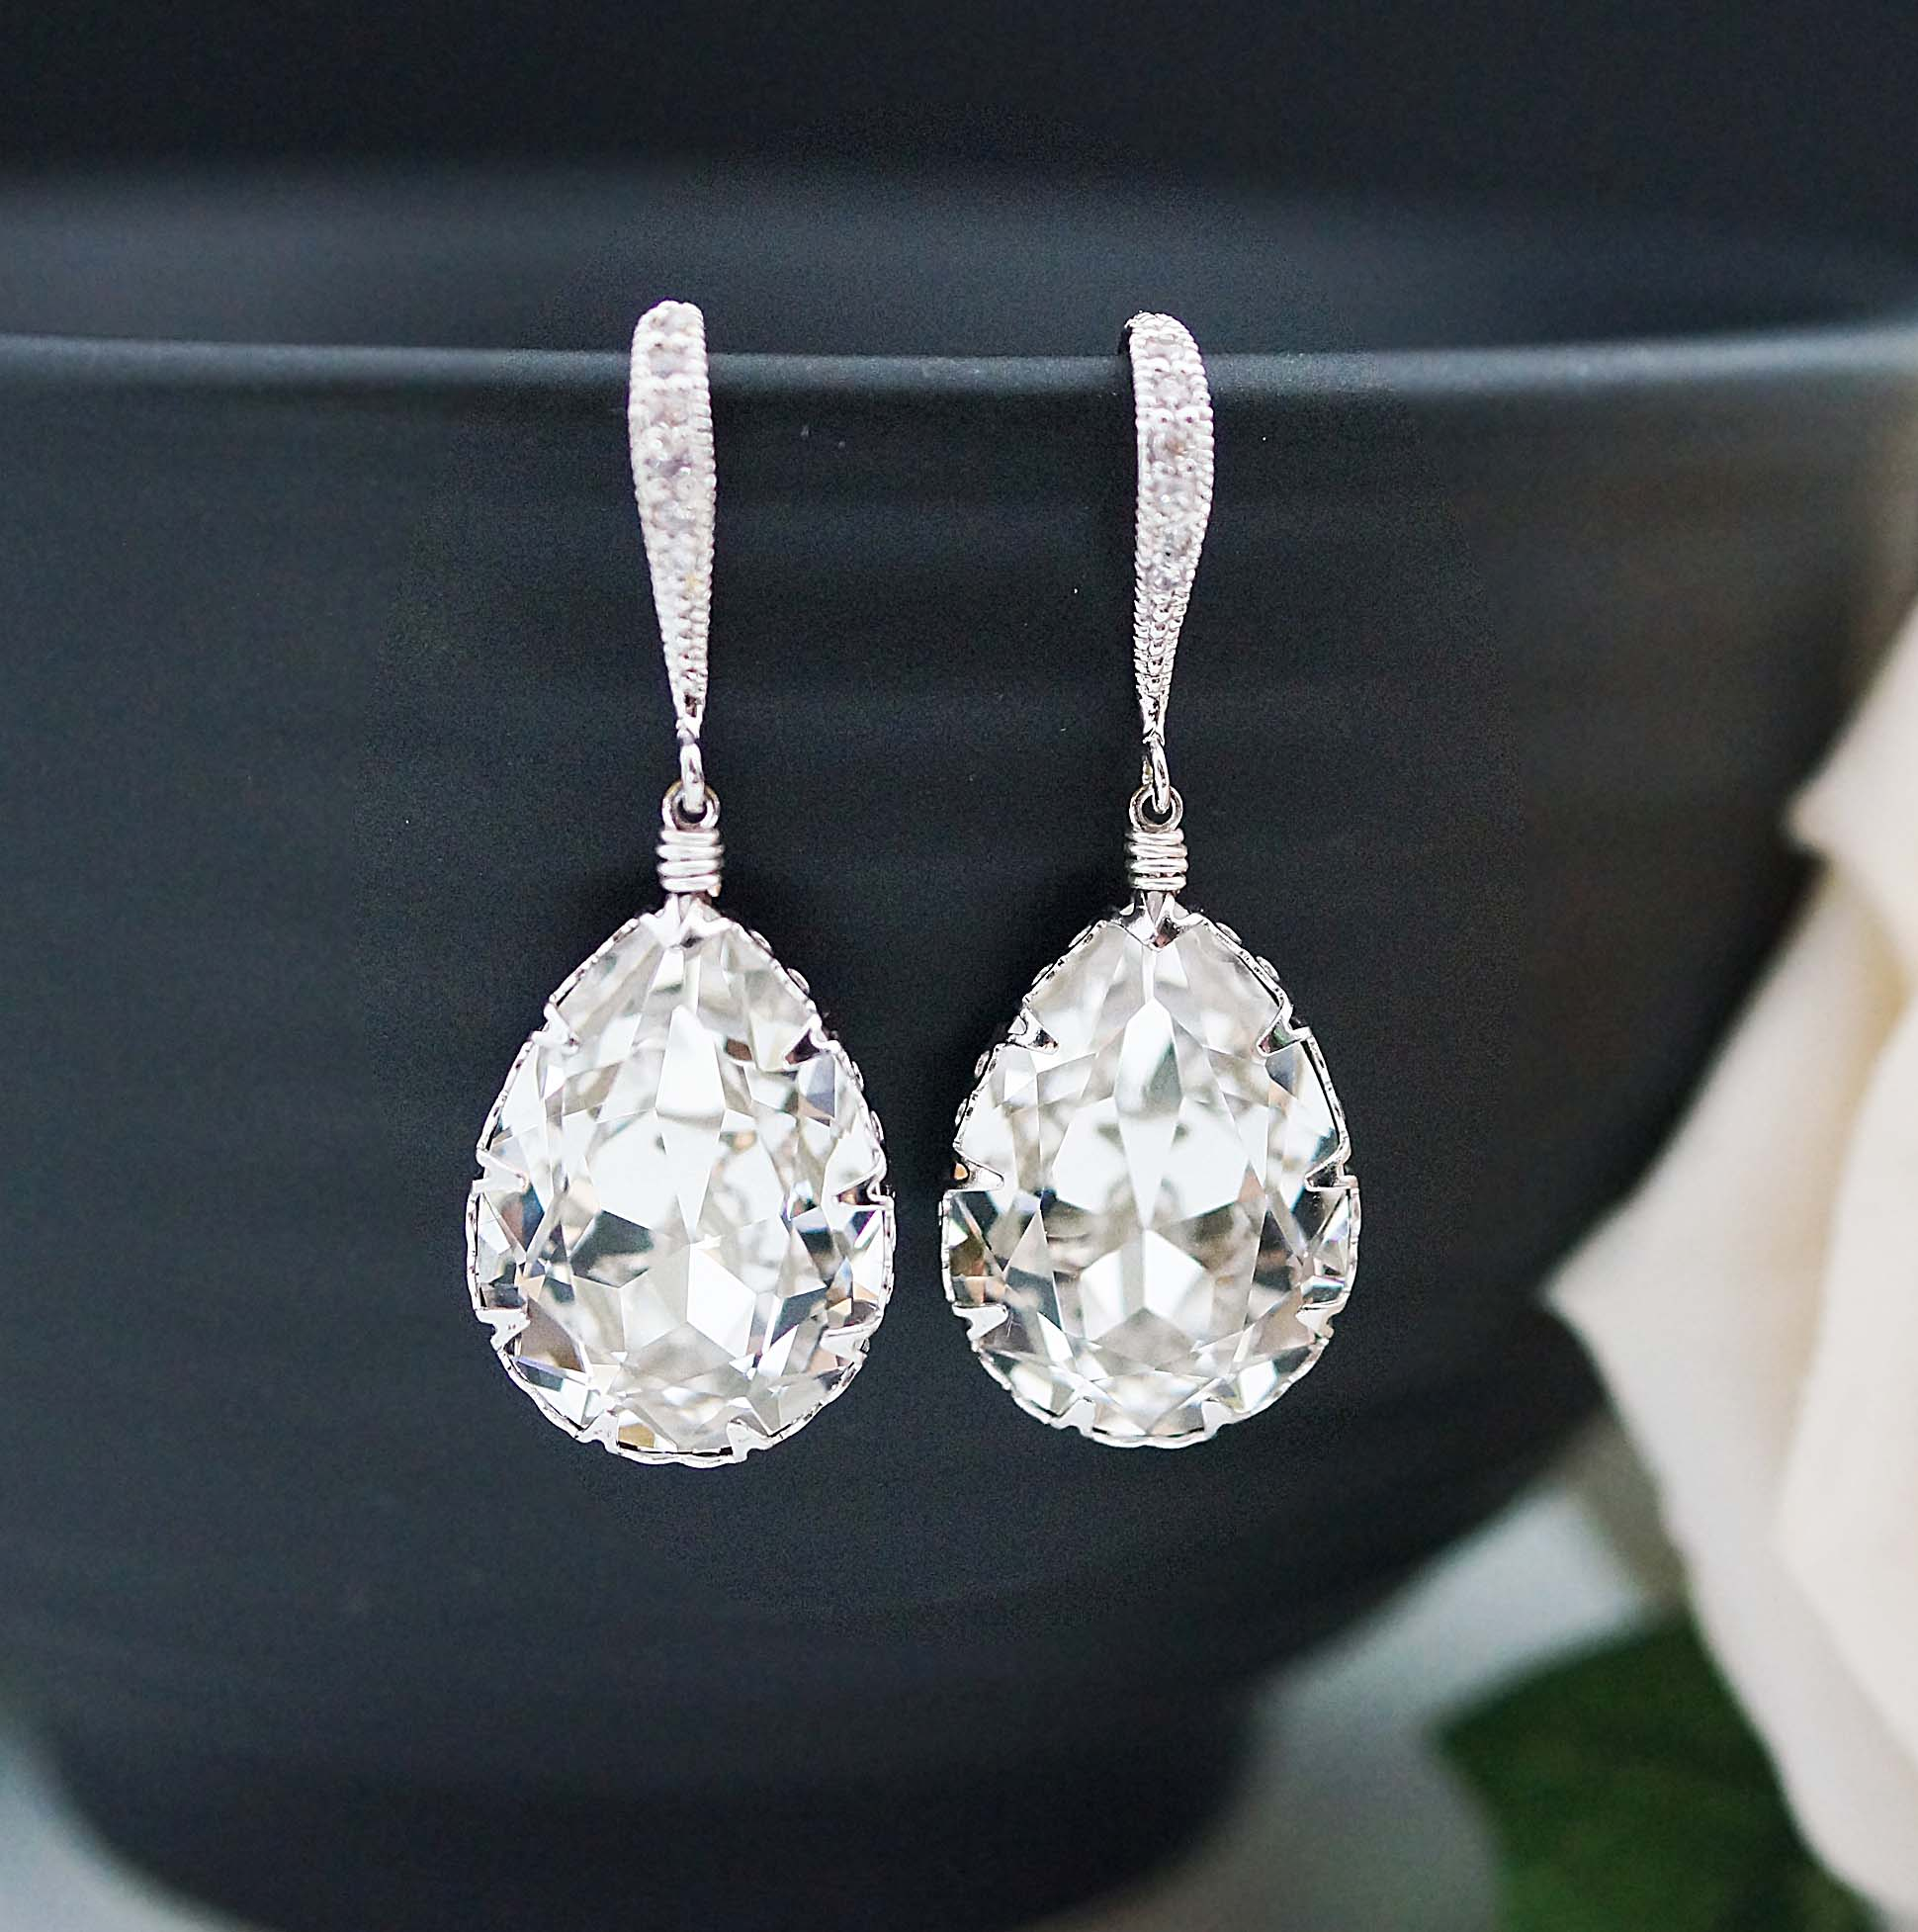 Wedding Jewelry Bridal Earrings Bridesmaid Dangle Clear White Swarovski Crystal Tear Drop